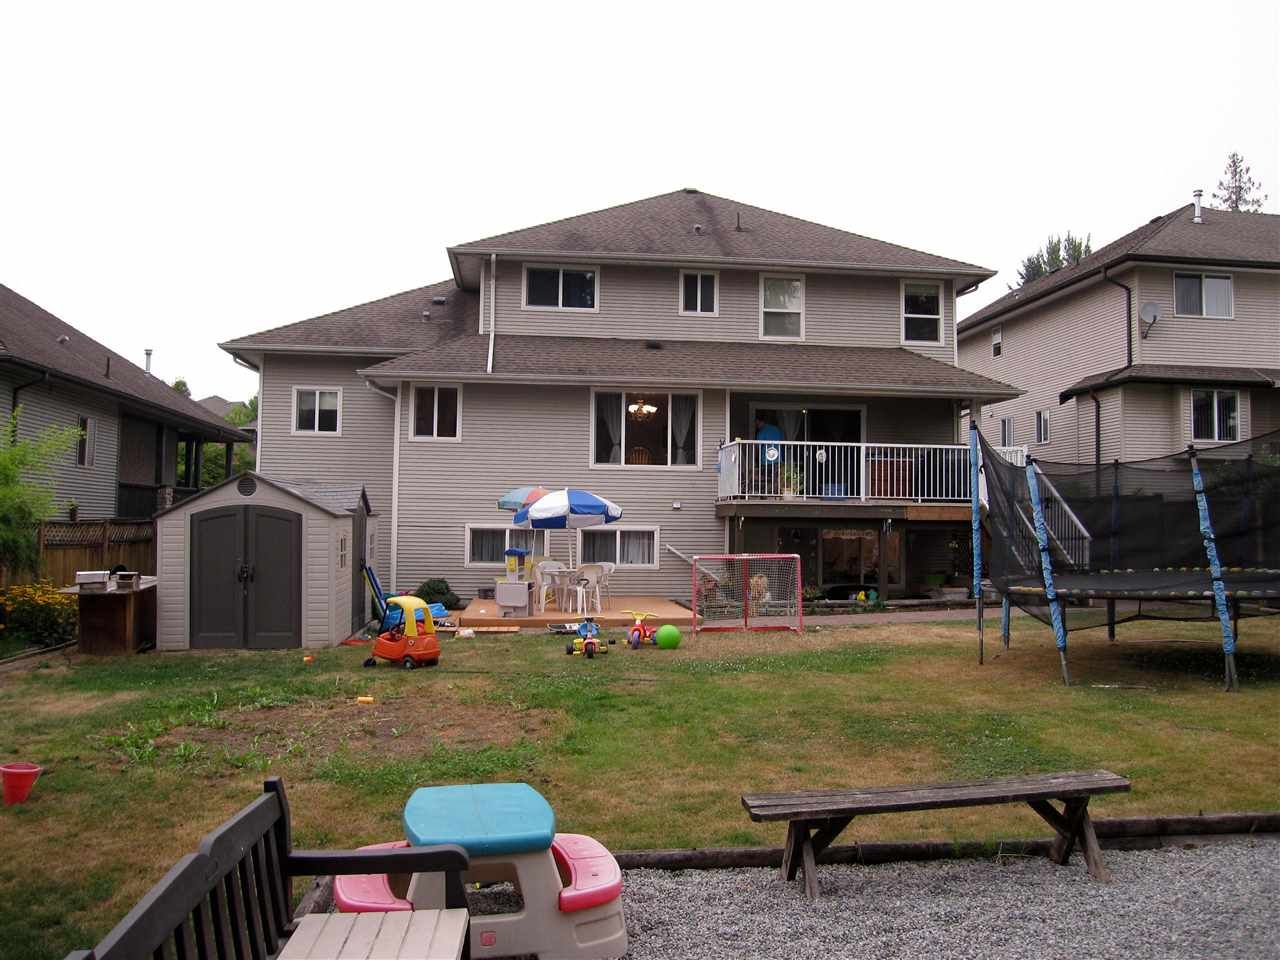 Photo 17: Photos: 22734 HOLYROOD Avenue in Maple Ridge: East Central House for sale : MLS®# R2203564